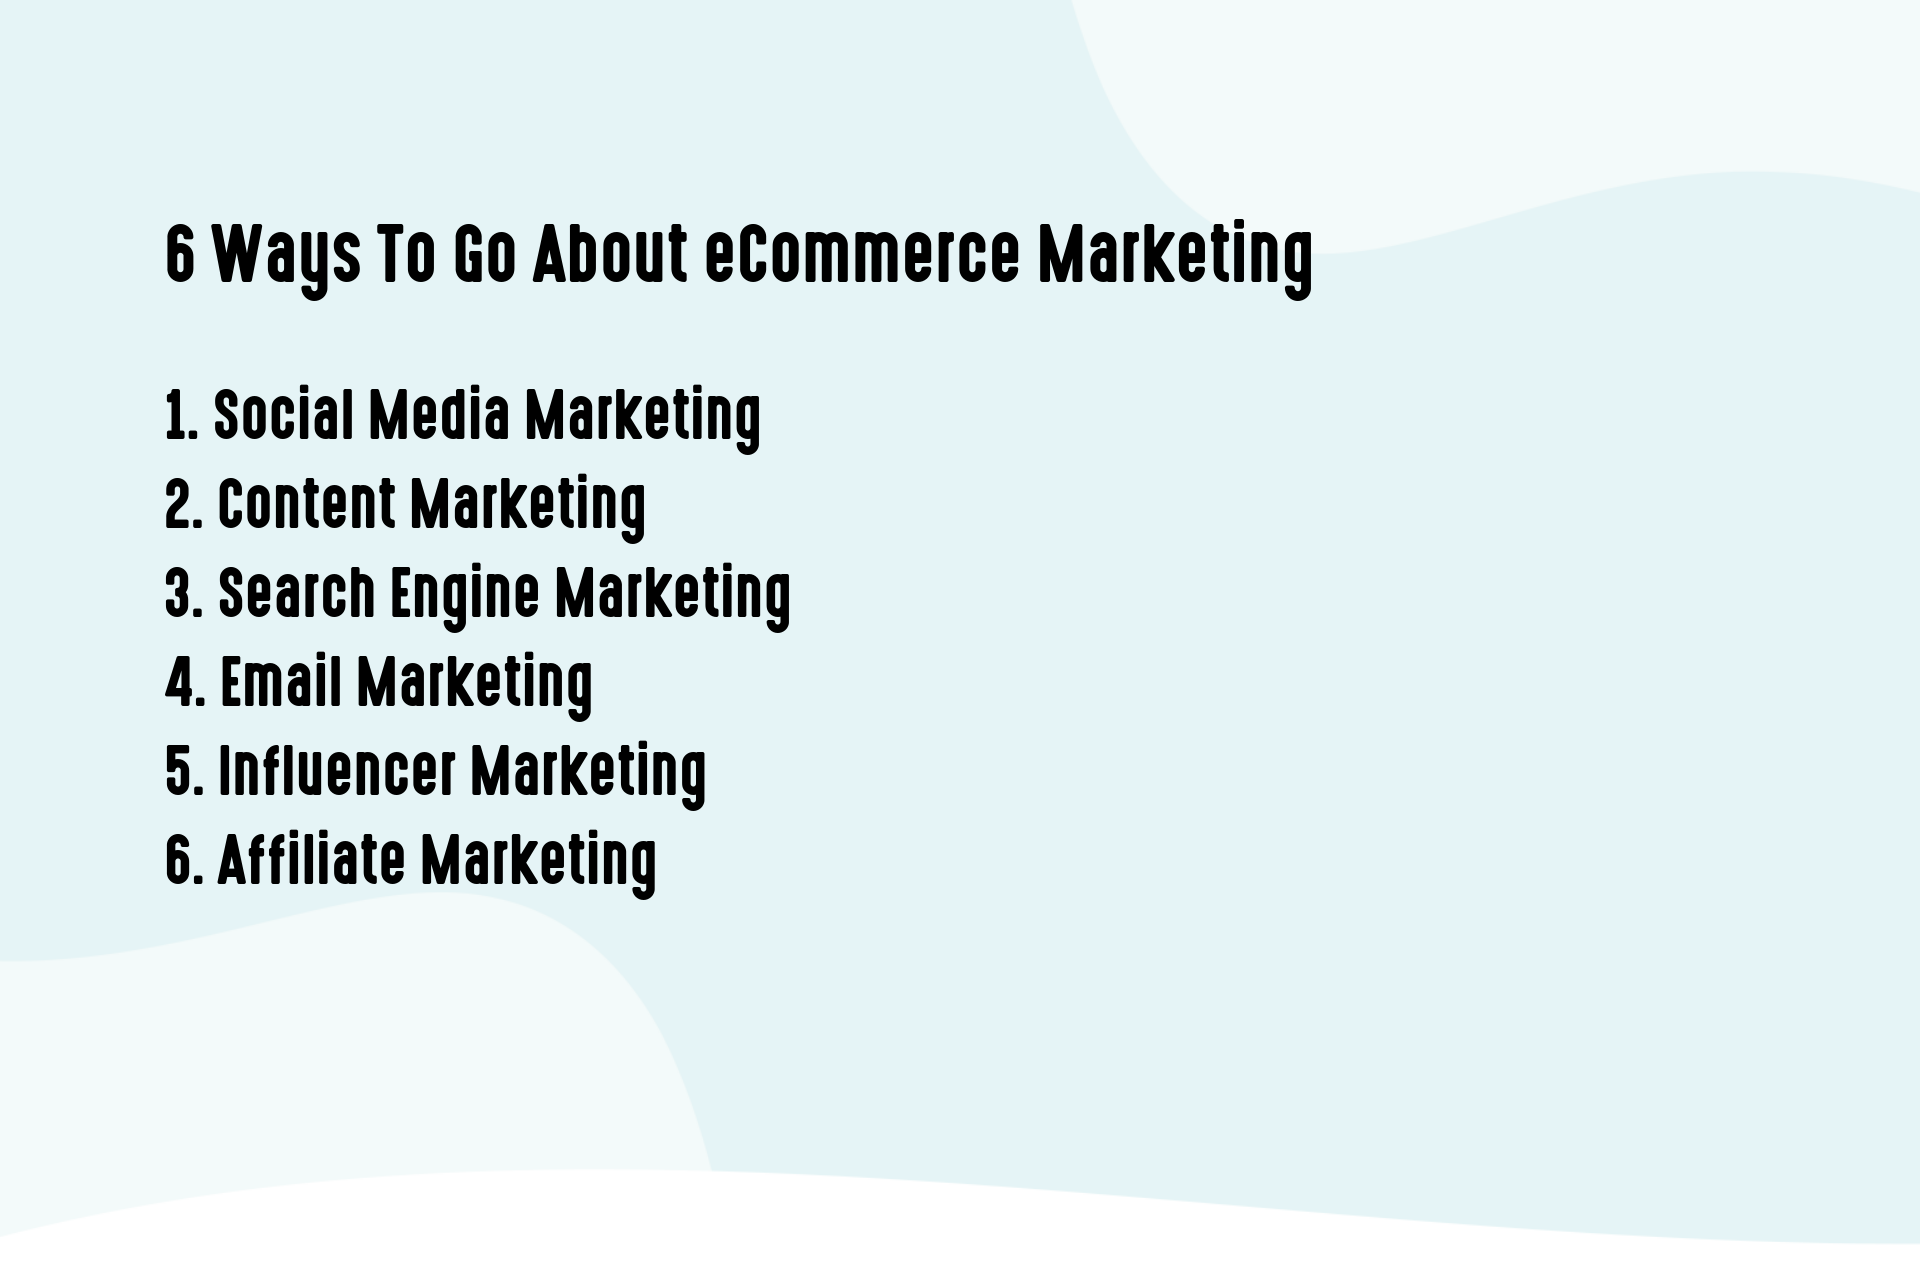 How To Go About eCommerce Marketing